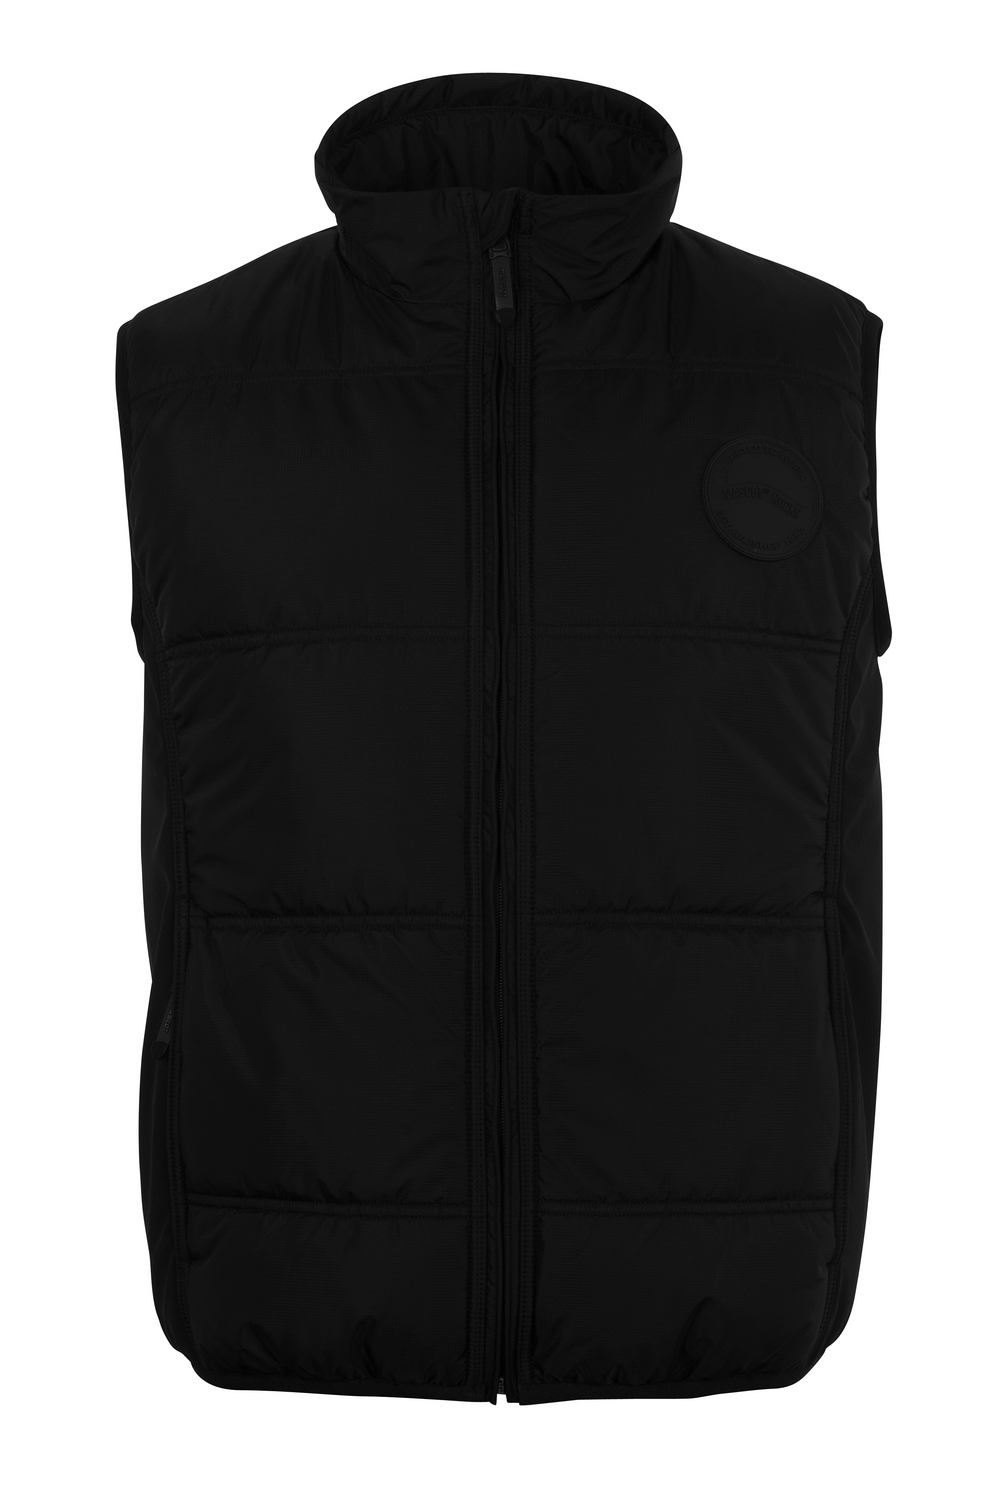 MASCOT CALICO THERMAL GILET – Limited Edition